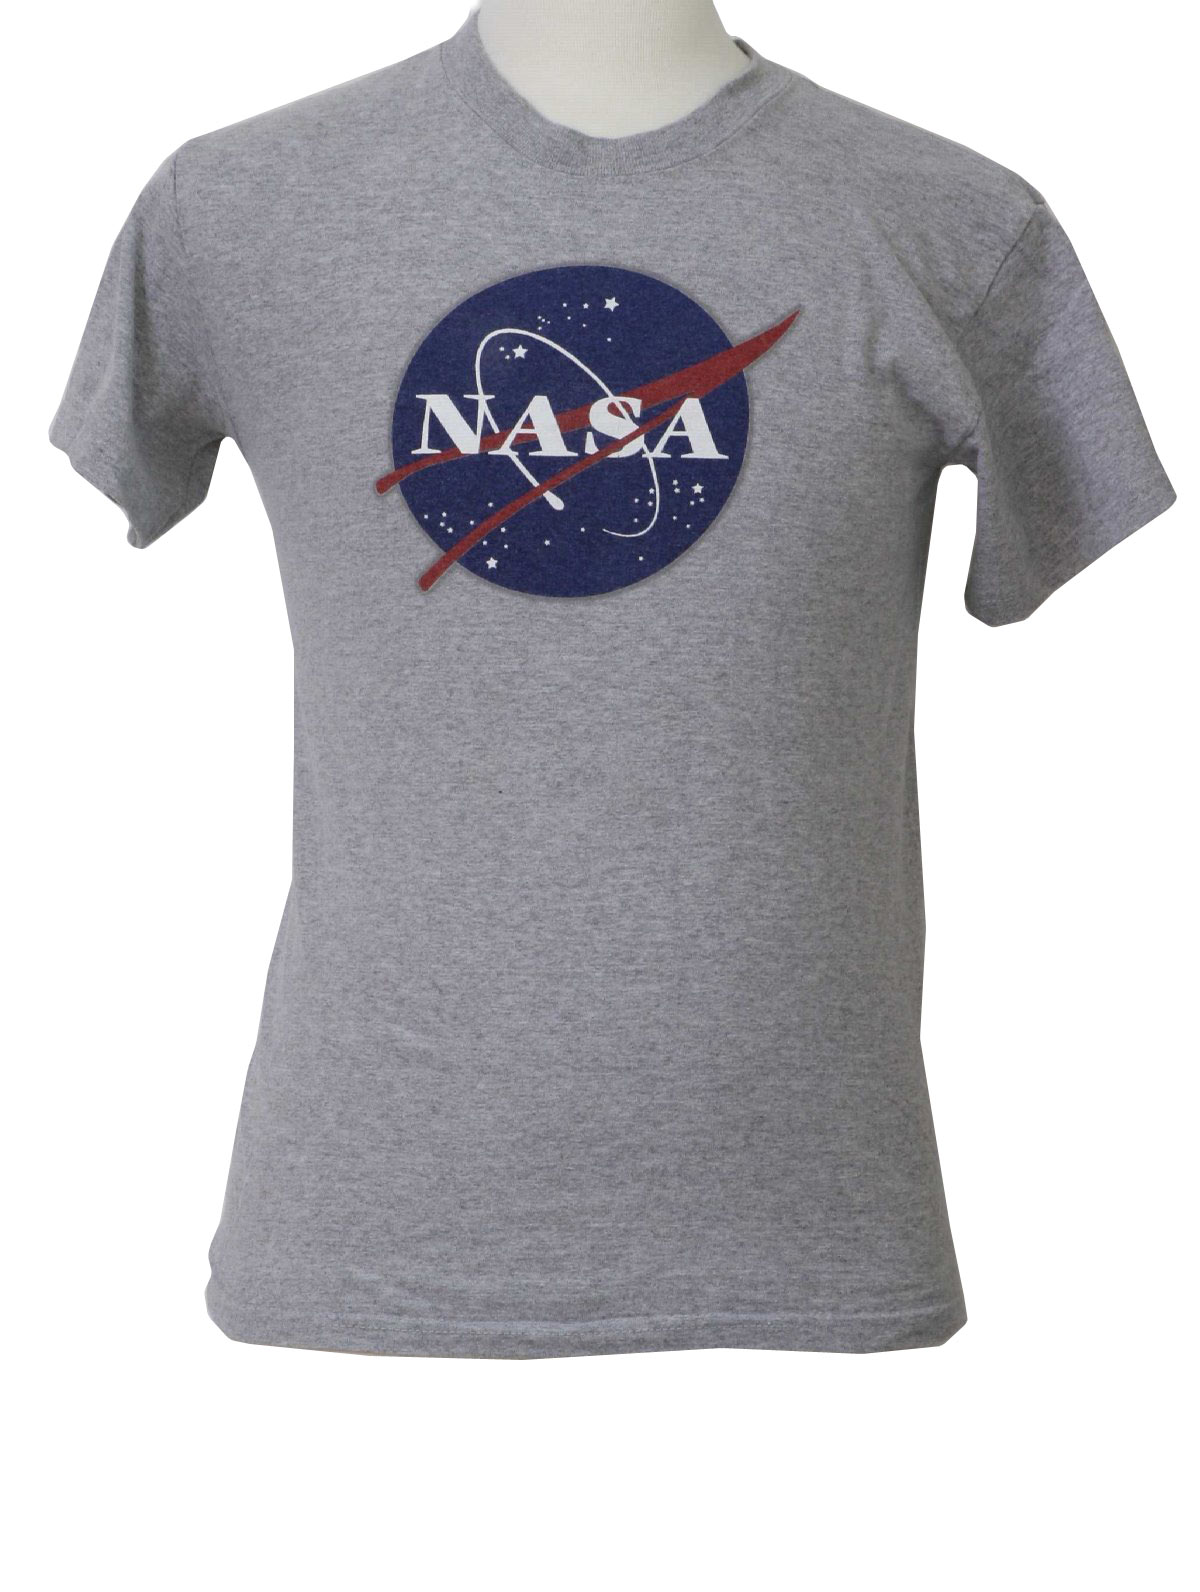 NASA T-Shirt (page 2) - Pics about space